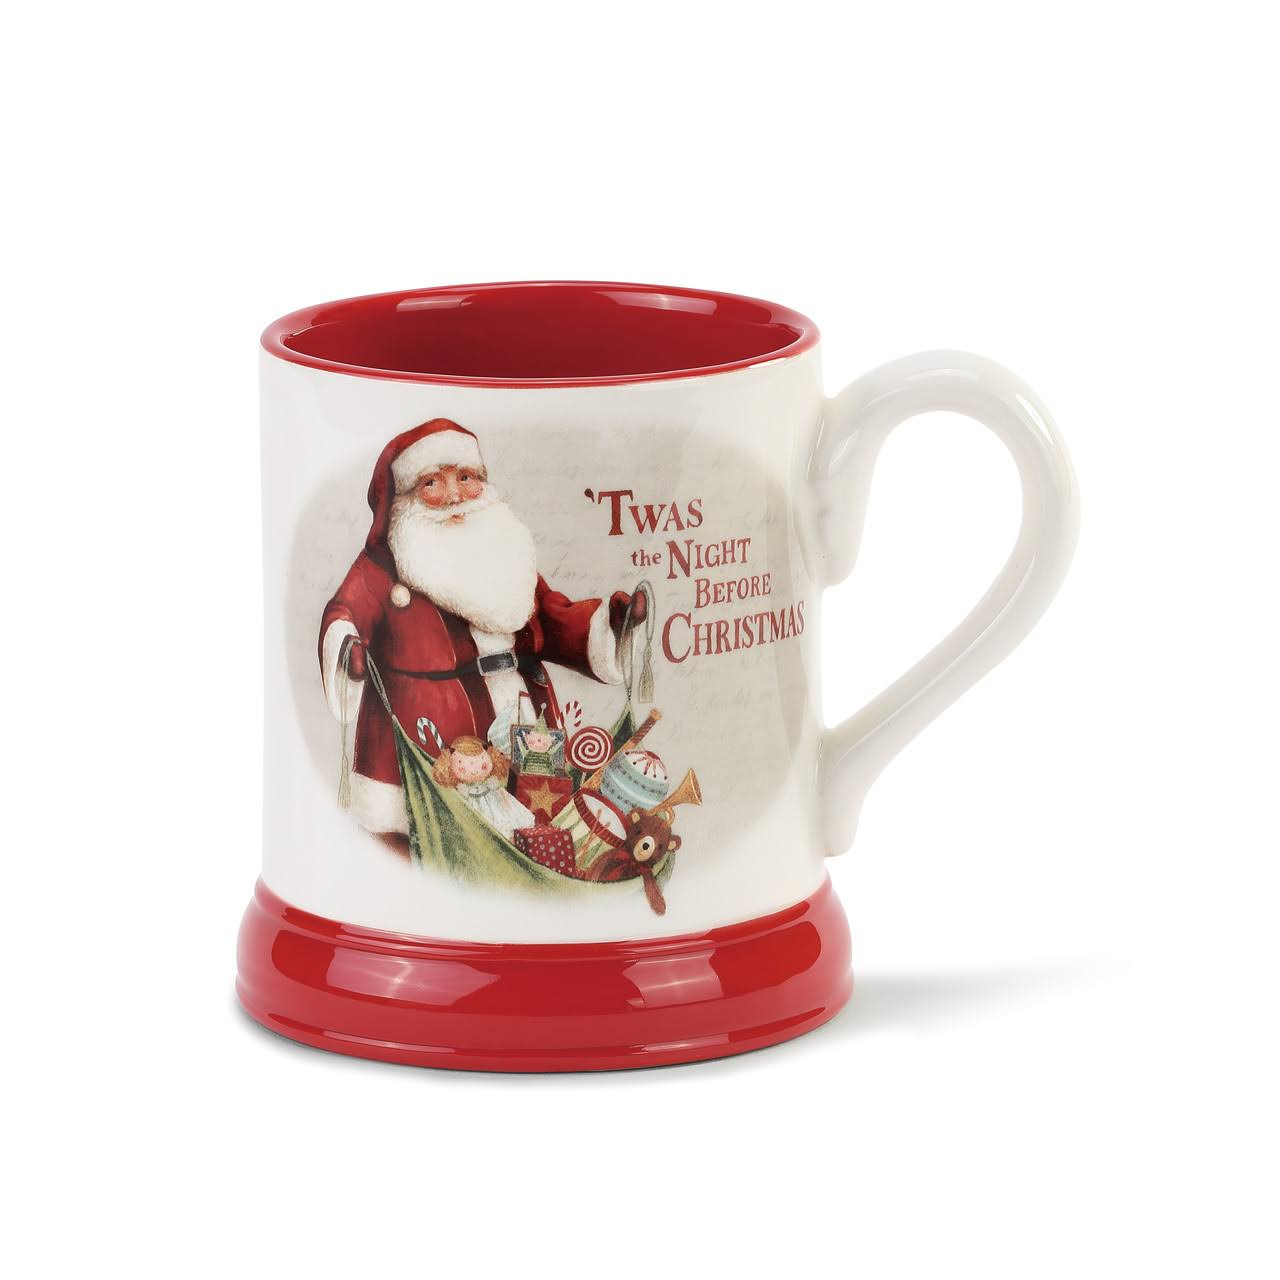 "Holiday Mercantile Twas The Night Before Christmas. Stoneware. 4.5"" H."